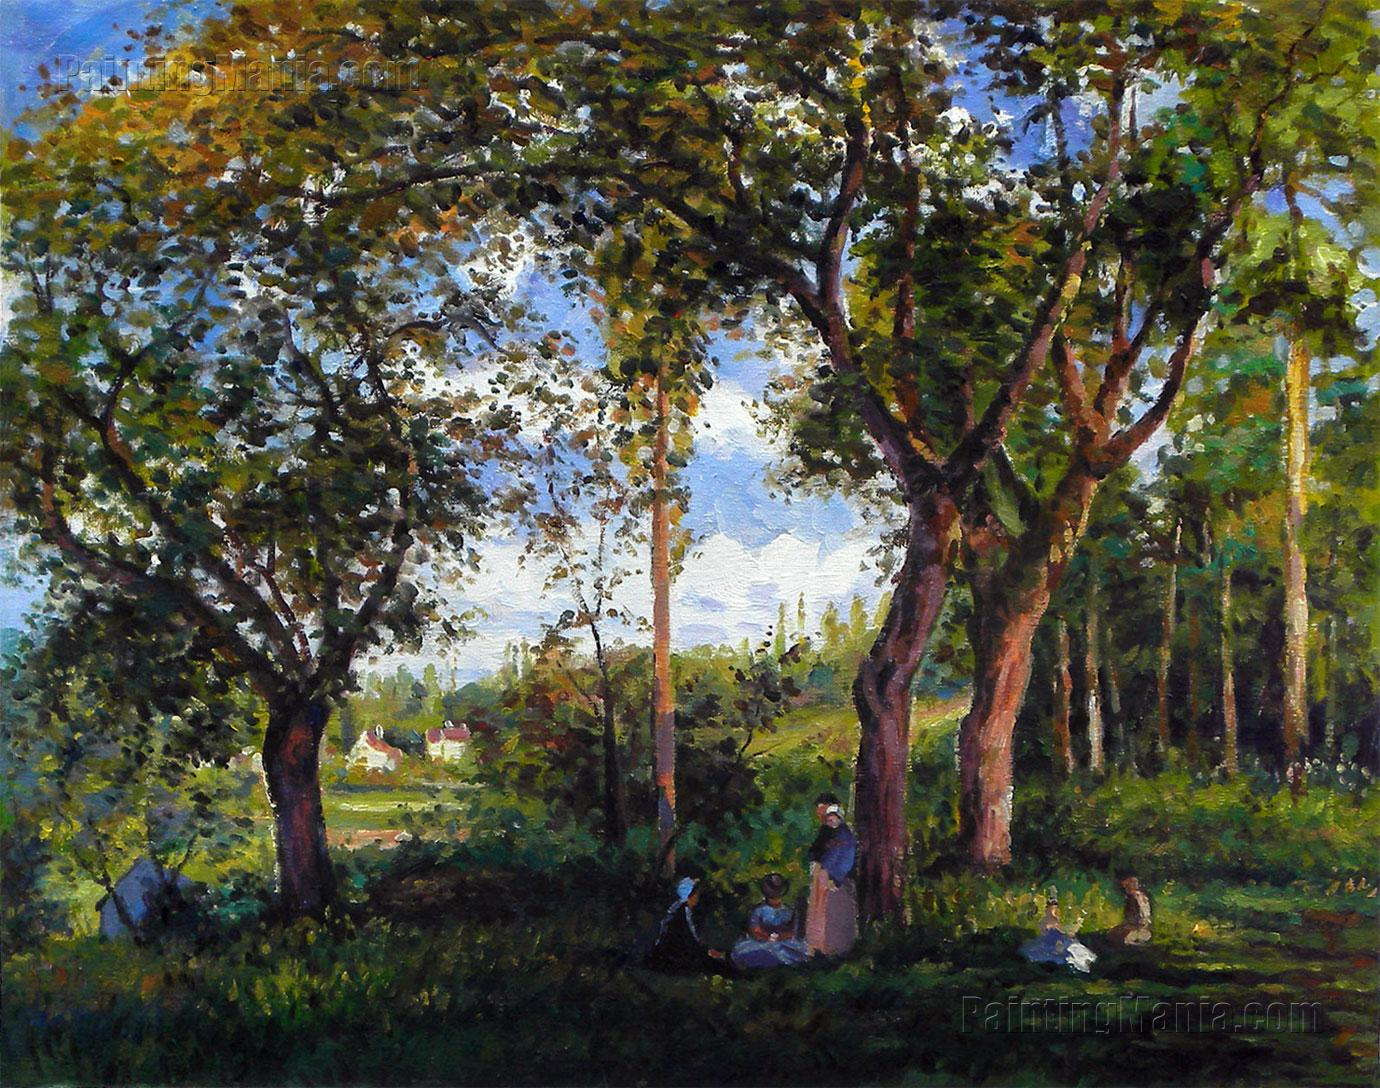 Landscape with Strollers Relaxing under the Trees